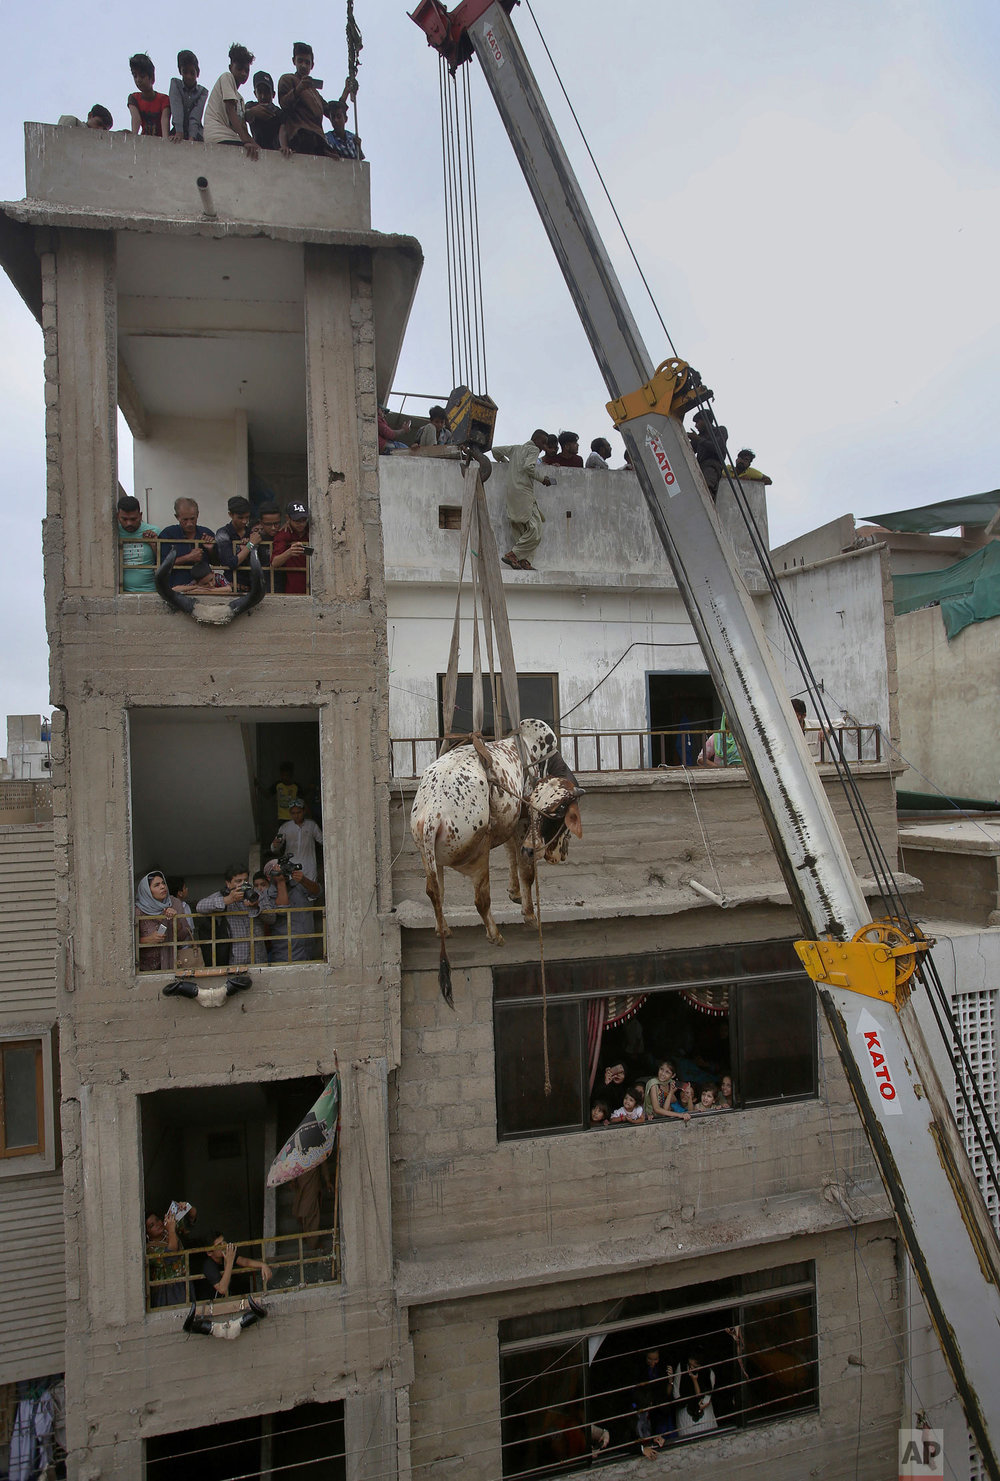 A vendor uses a crane to bring a bull down from the rooftop of his house so he can sell him at a livestock market set up for the upcoming Muslim Eid al-Adha holiday, in Karachi, Pakistan, Sunday, Aug. 12, 2018. Eid al-Adha, or Feast of Sacrifice, Islam's most important holiday marks the willingness of the Prophet Ibrahim (Abraham to Christians and Jews) to sacrifice his son. (AP Photo/Fareed Khan)